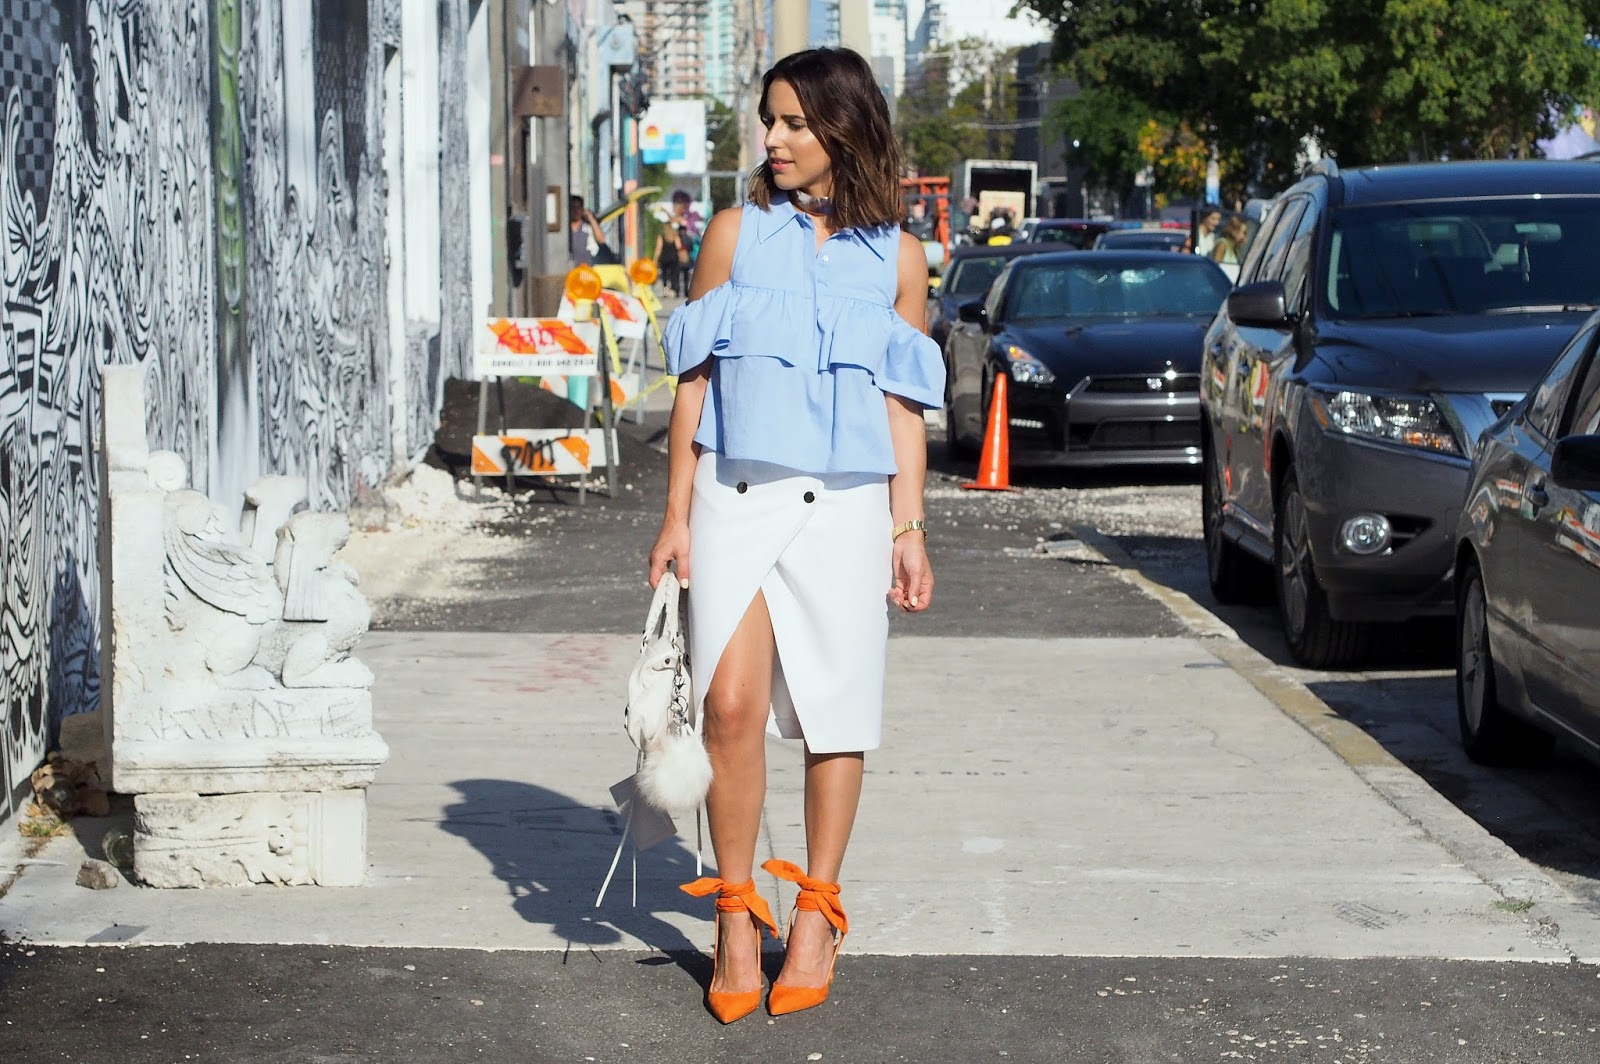 fashion-blogger-kelly-saks-zara-shoulder-blouse-orange-wrap-pumps